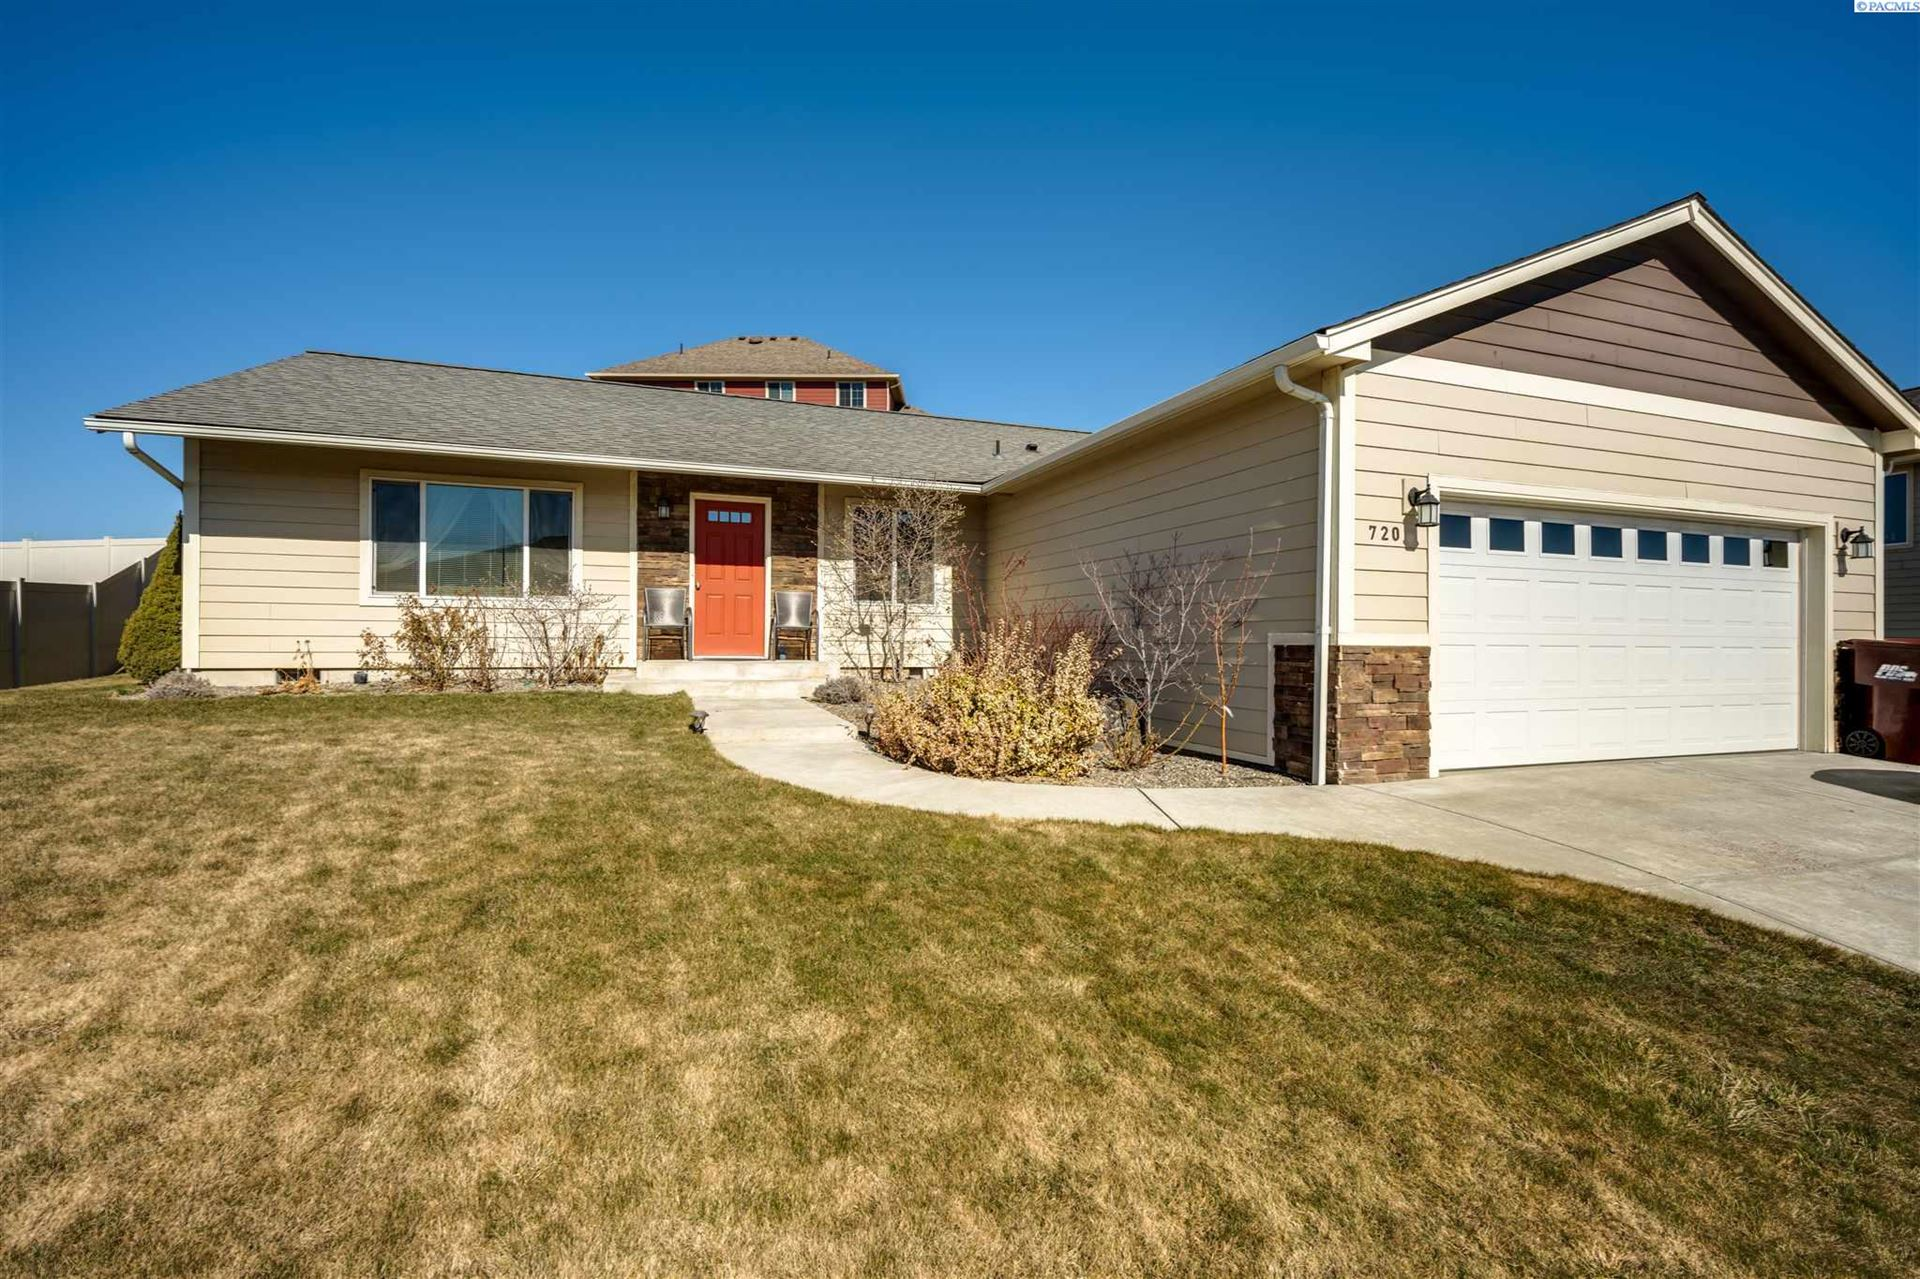 Photo of 720 NW Valley View Drive, Pullman, WA 99163 (MLS # 252238)